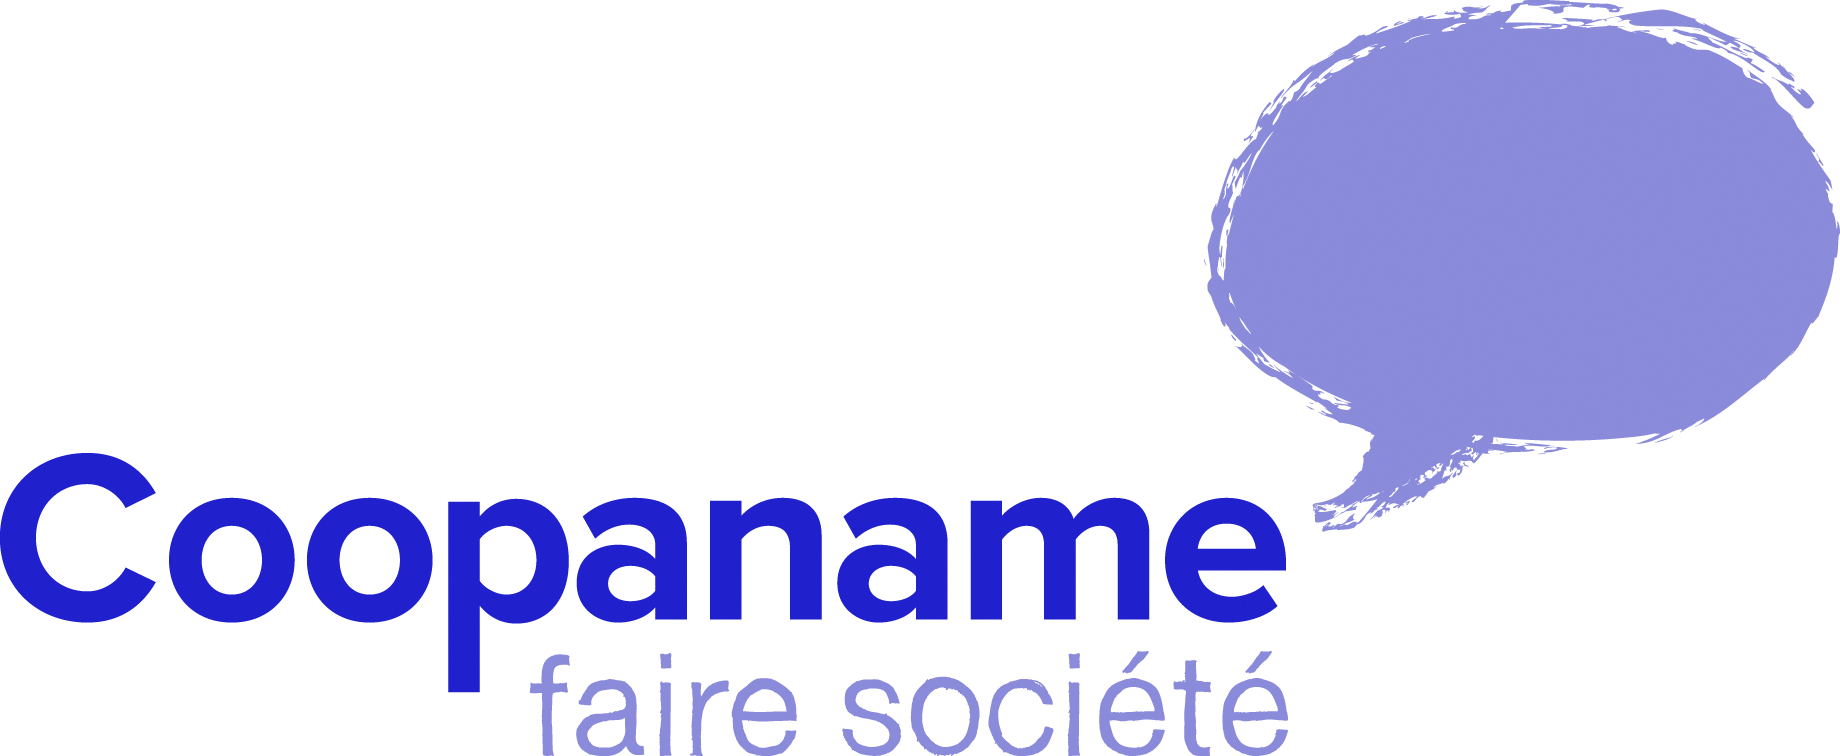 coopaname_logo_hd-png